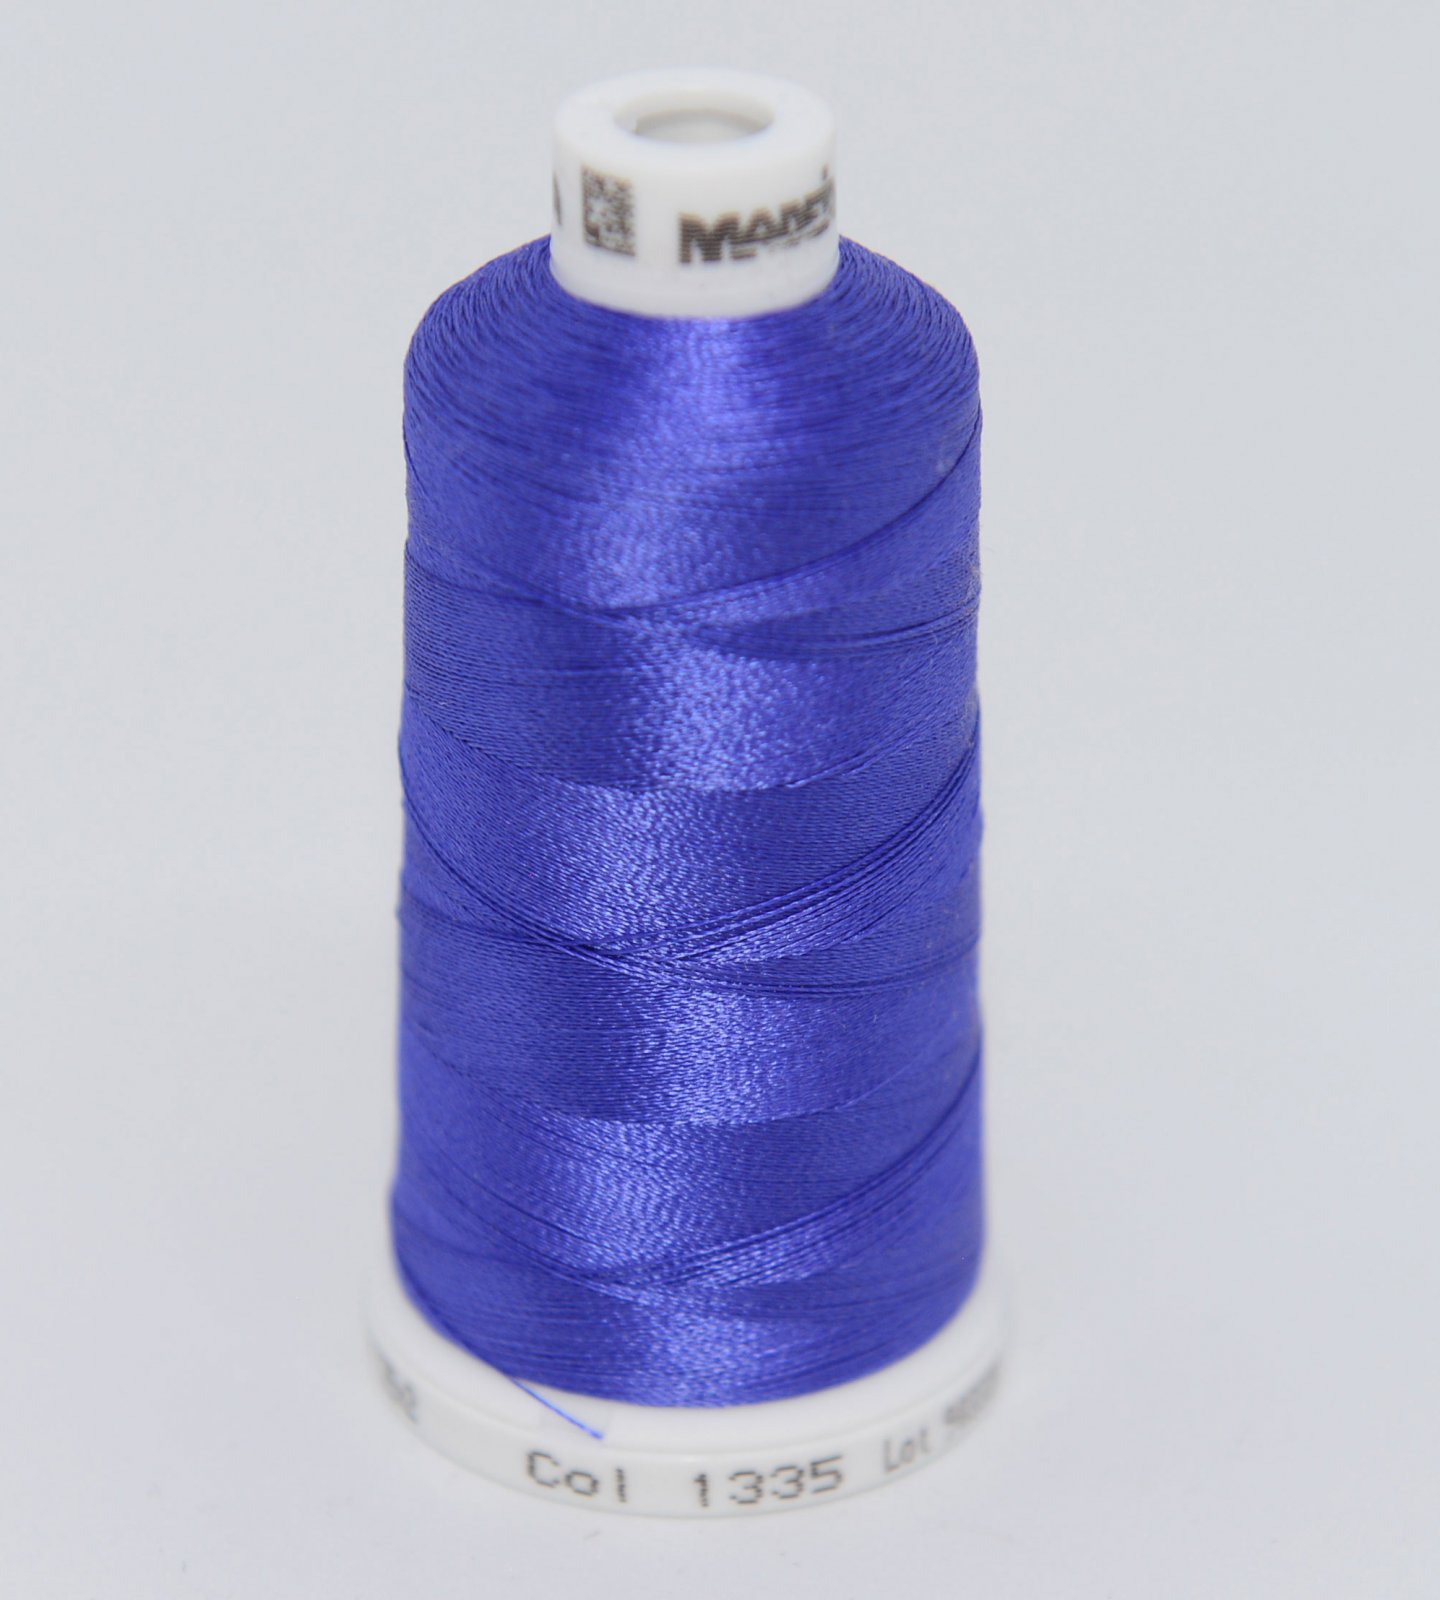 Madeira Rayon Embroidery Thread 1100yd Spool BLUE PURPLE Color 1335